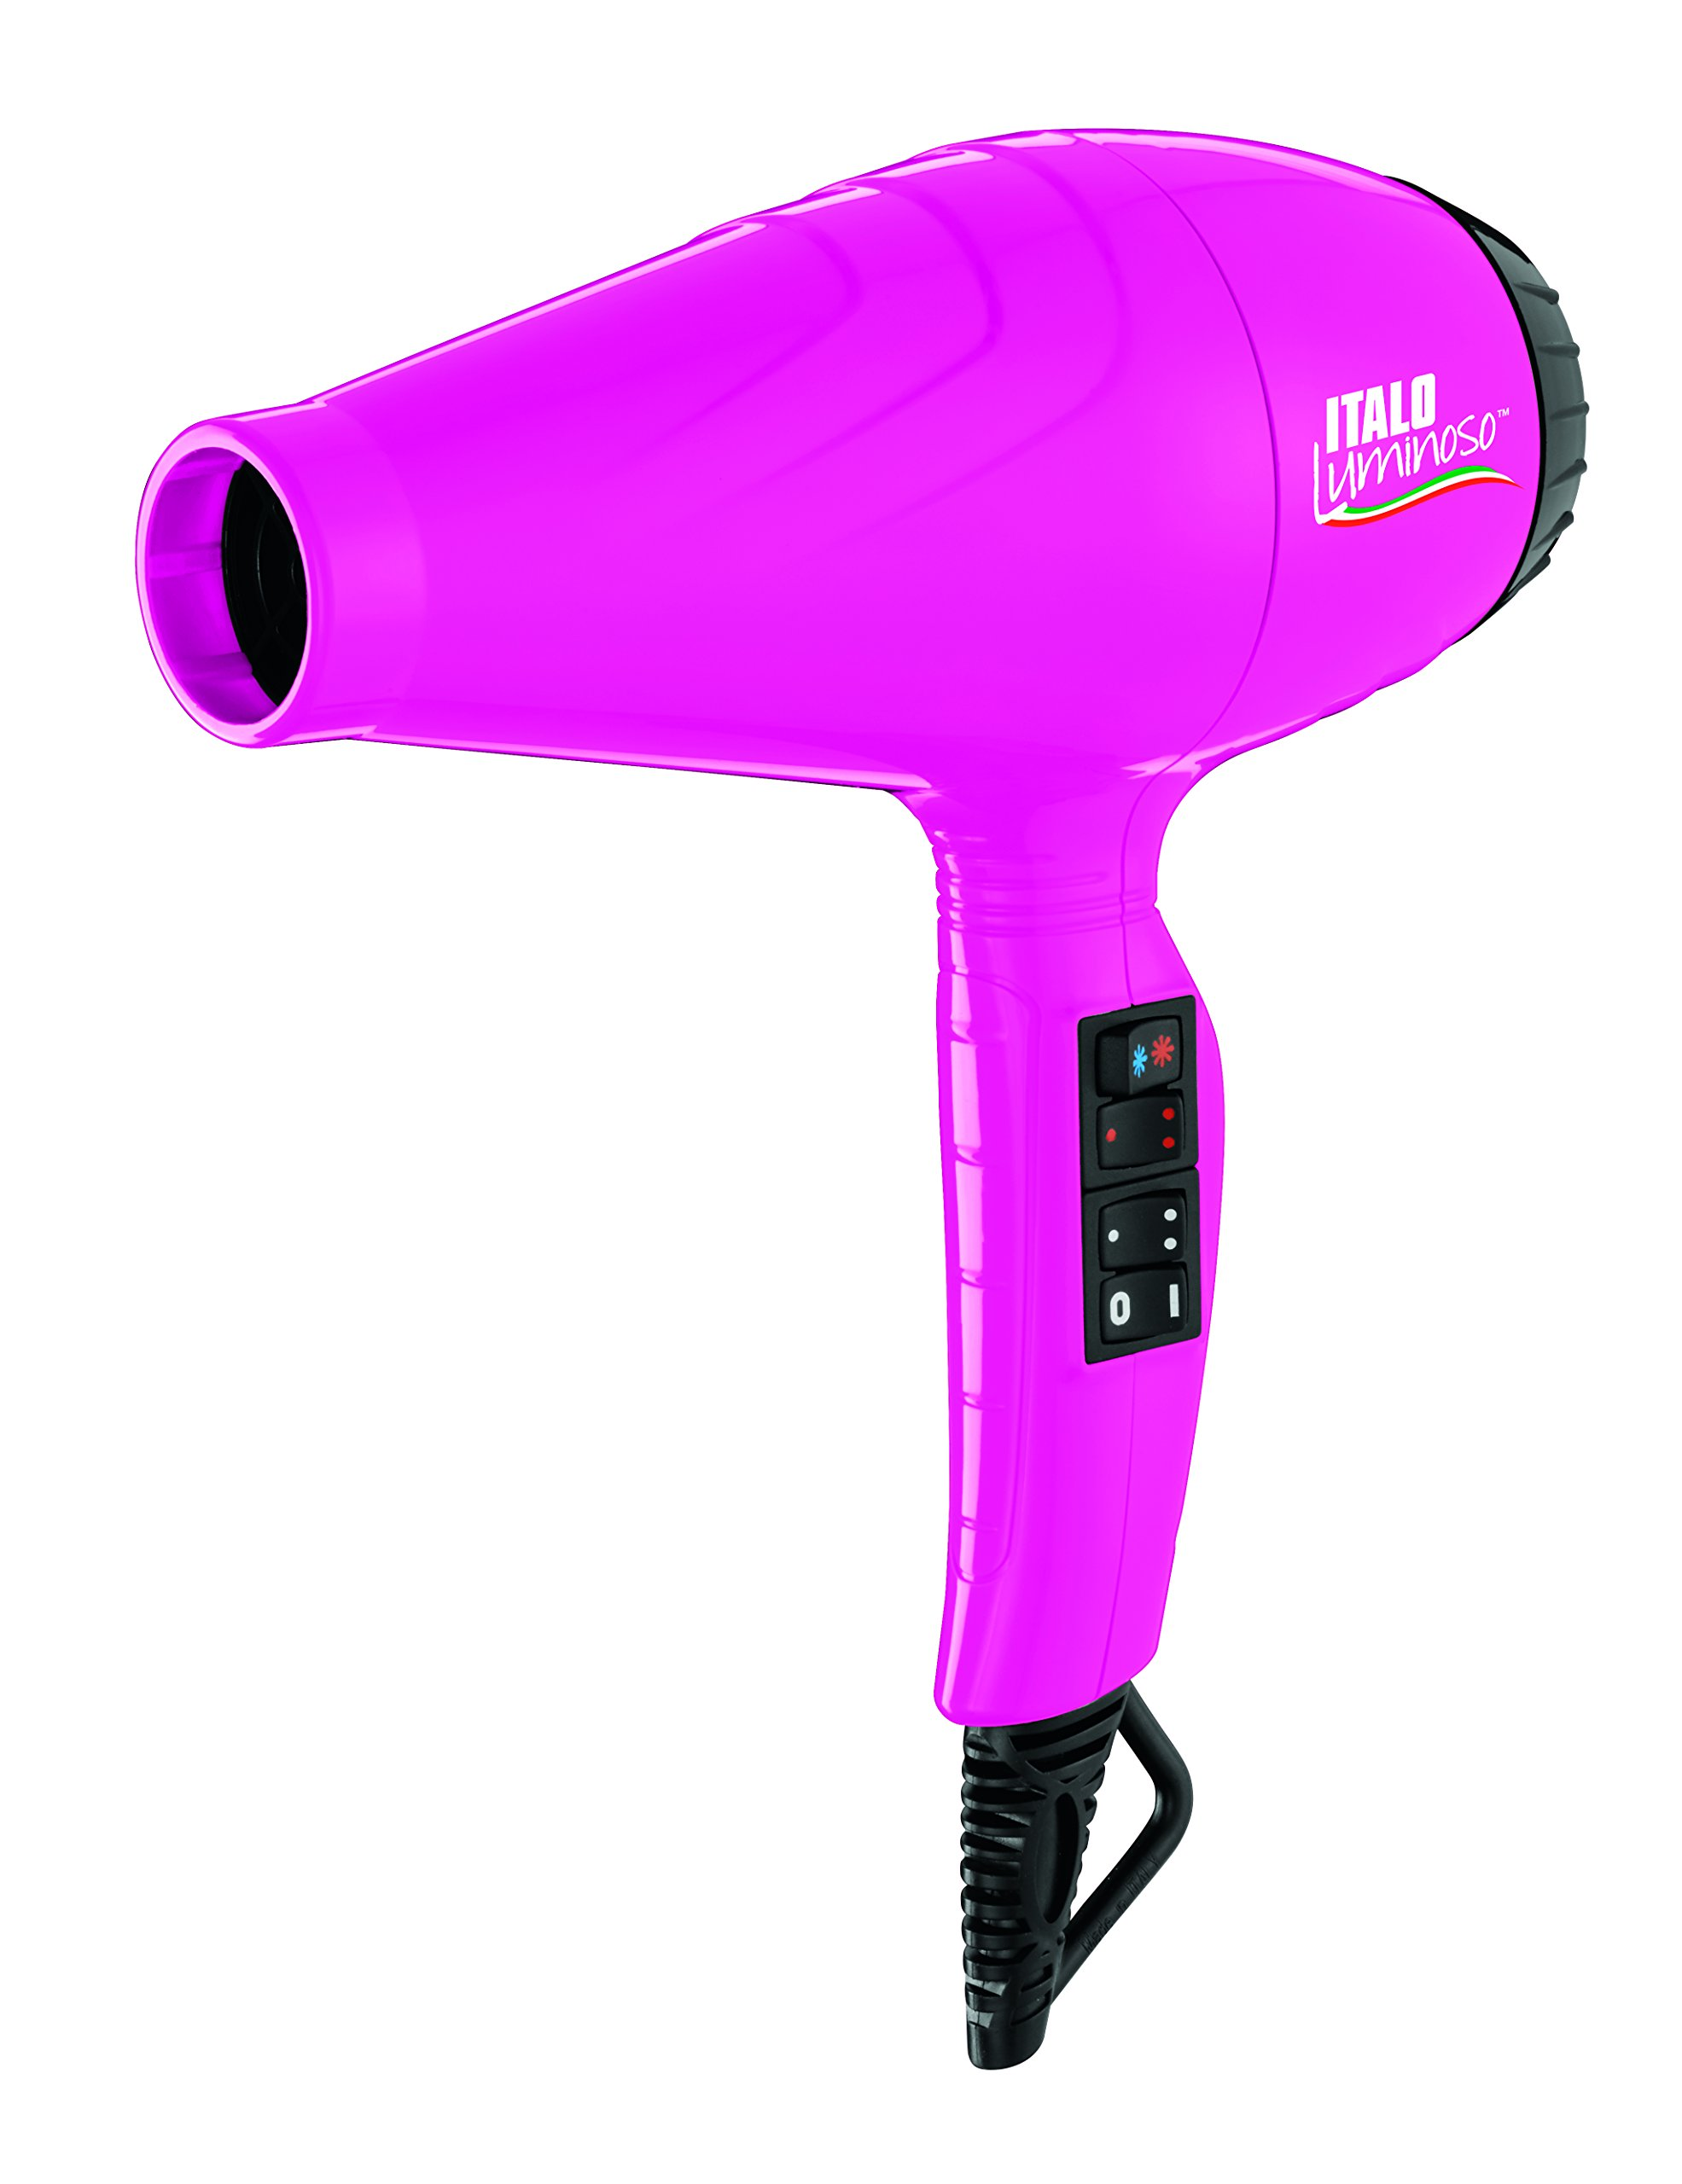 BaBylissPRO Italo Luminoso Pink Hair Dryer - 71K  8tyHiL - BaBylissPRO Italo Luminoso Pink Hair Dryer